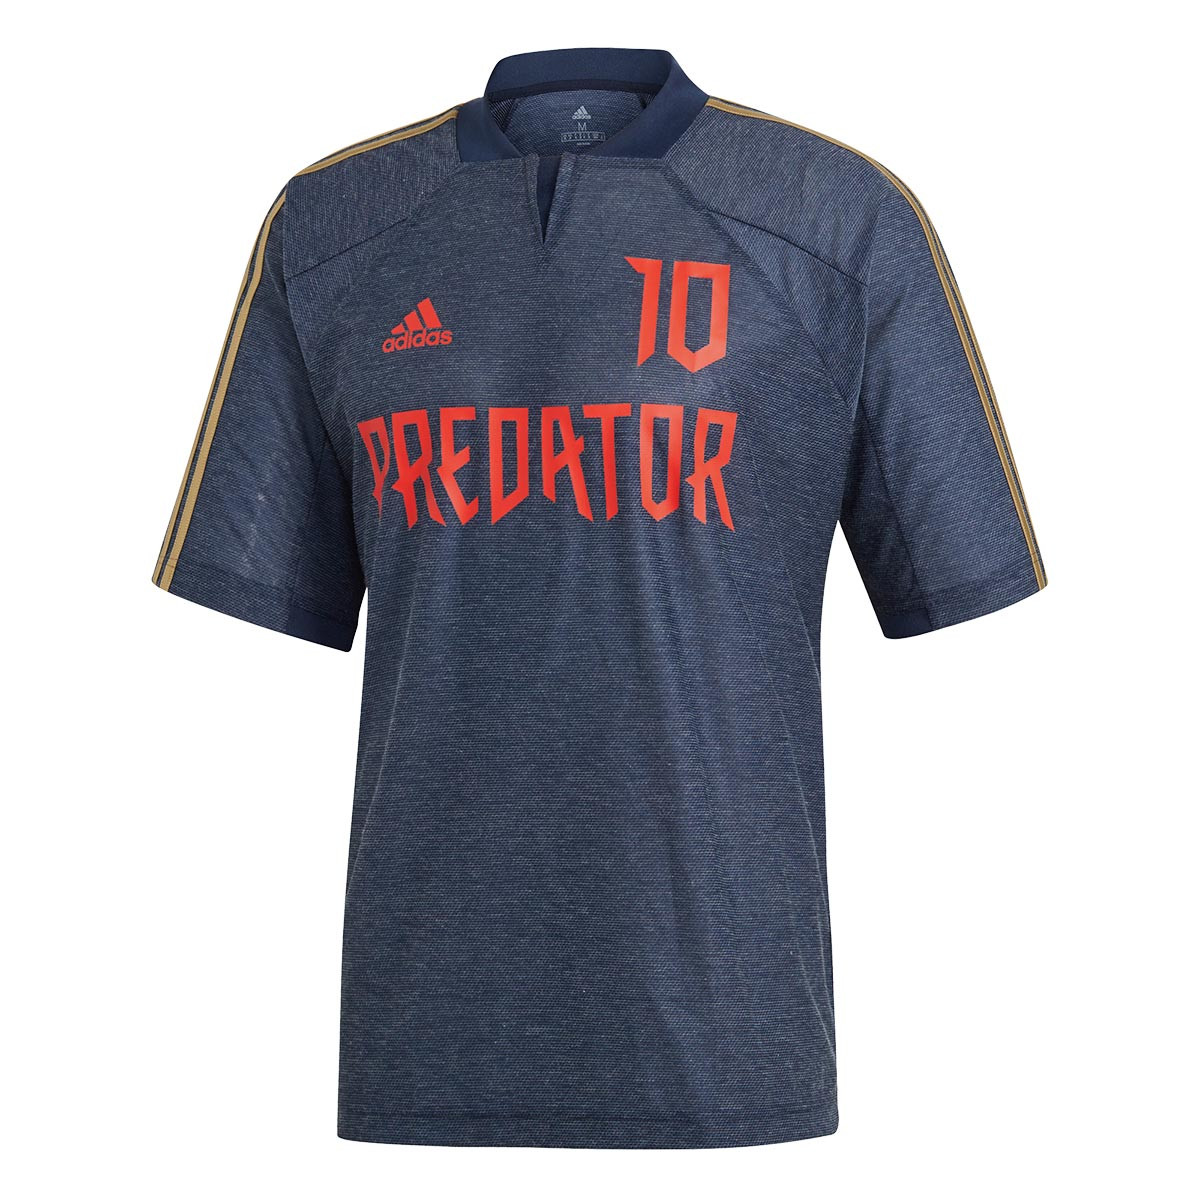 Zz Predator Boutique Collegiate Red Adidas De Navy Maillot TxFqREw4